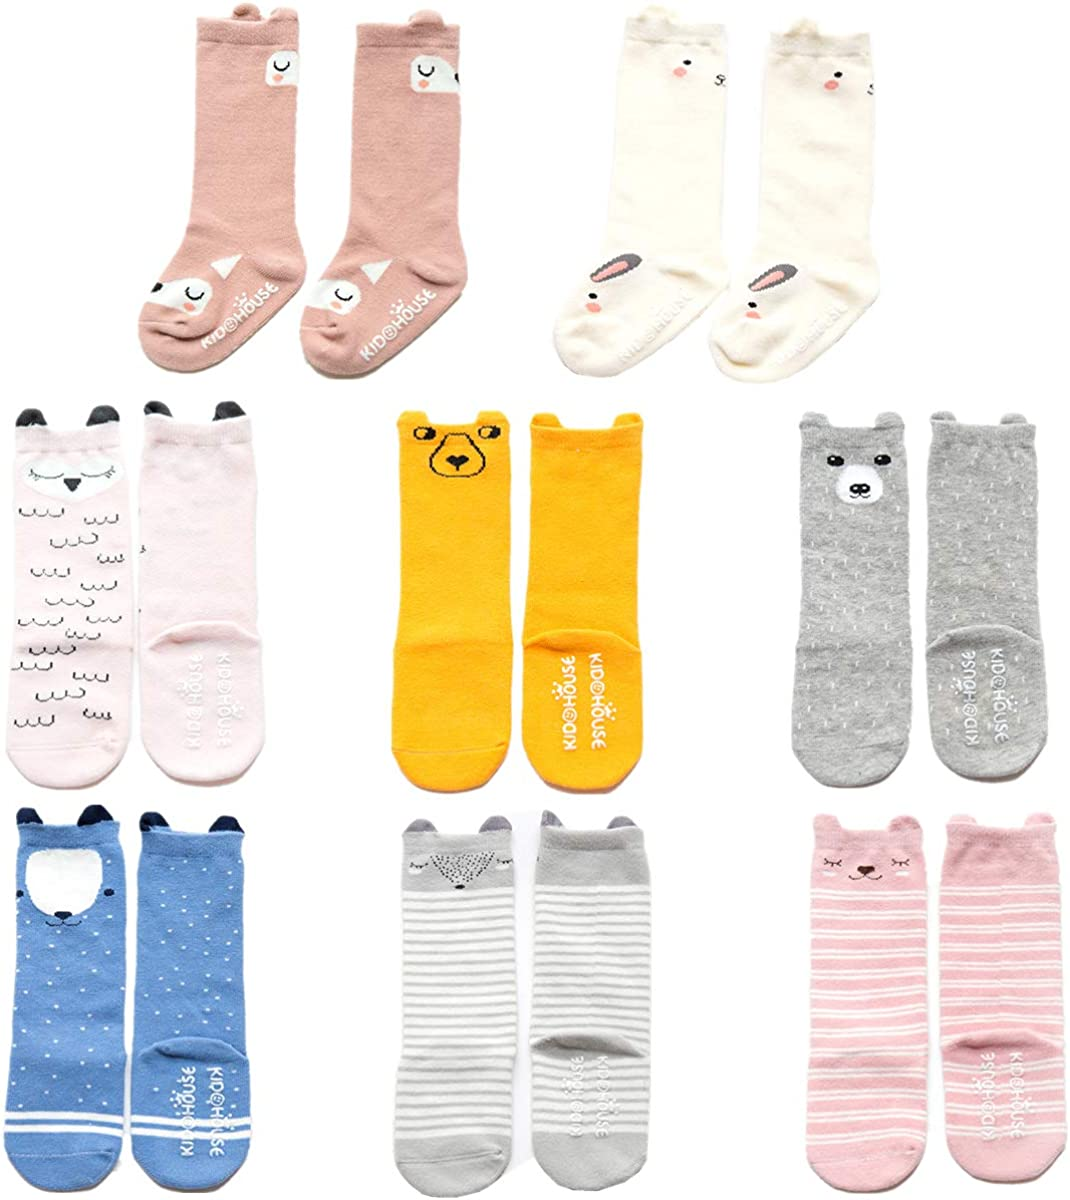 8 Pairs Baby Toddler Knee High Non Skid Socks with Grips for Girls and Boys